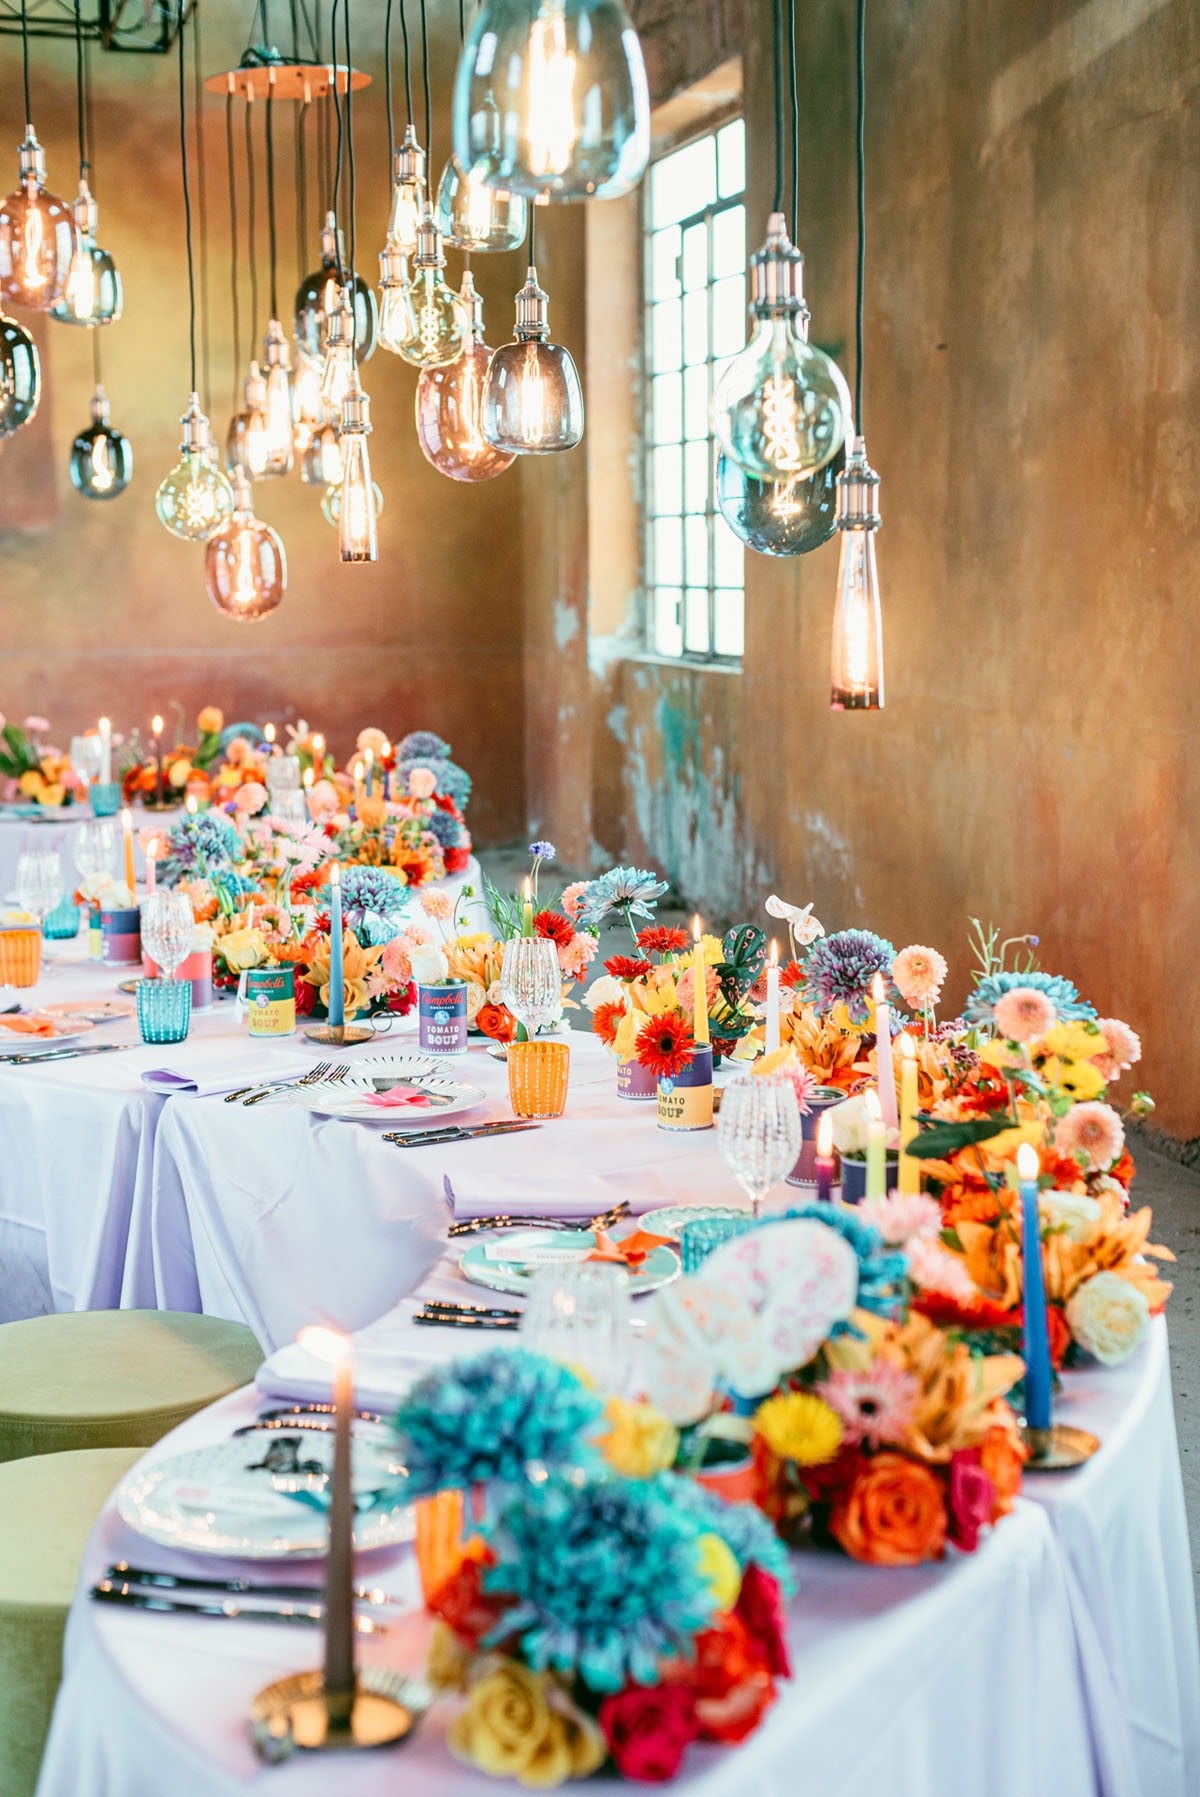 This wedding reception space is so cool, with a colorful long table, bold candles and blooms and hanging bulbs